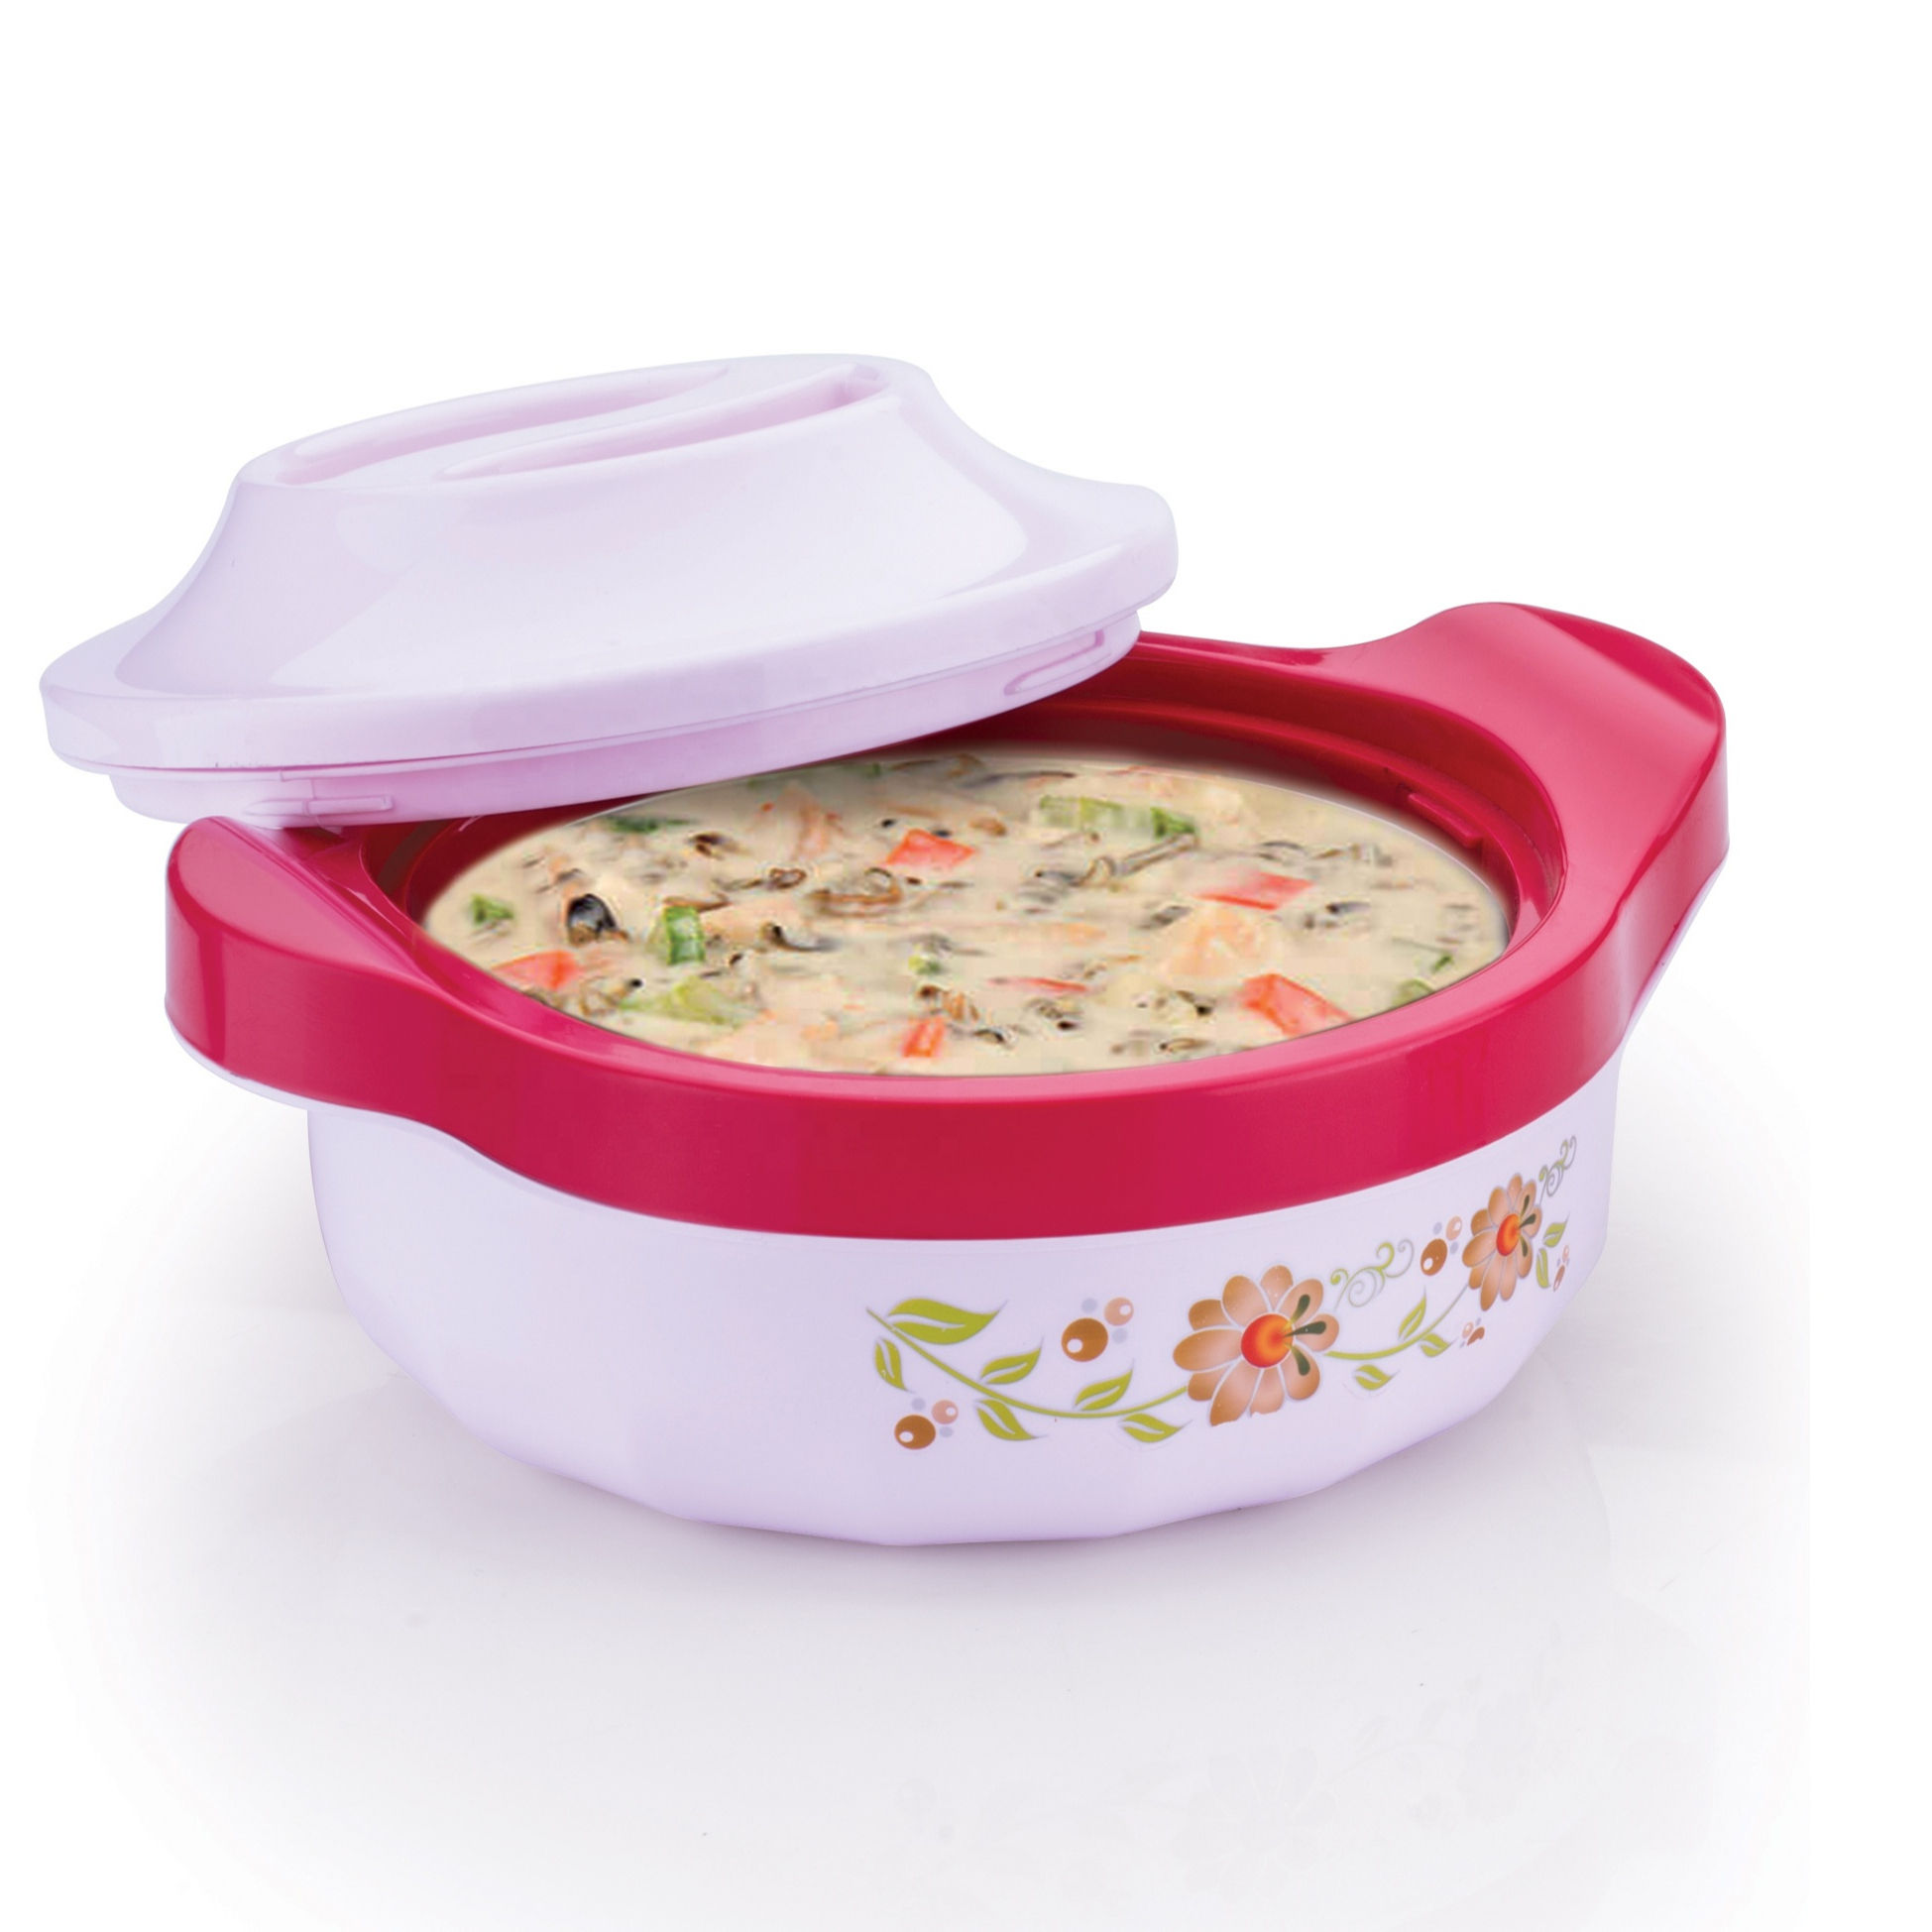 Hot Selling Home Kitchen utensils casserole for domestic use hot product 2020 / KITCHENWARE RAJKOT